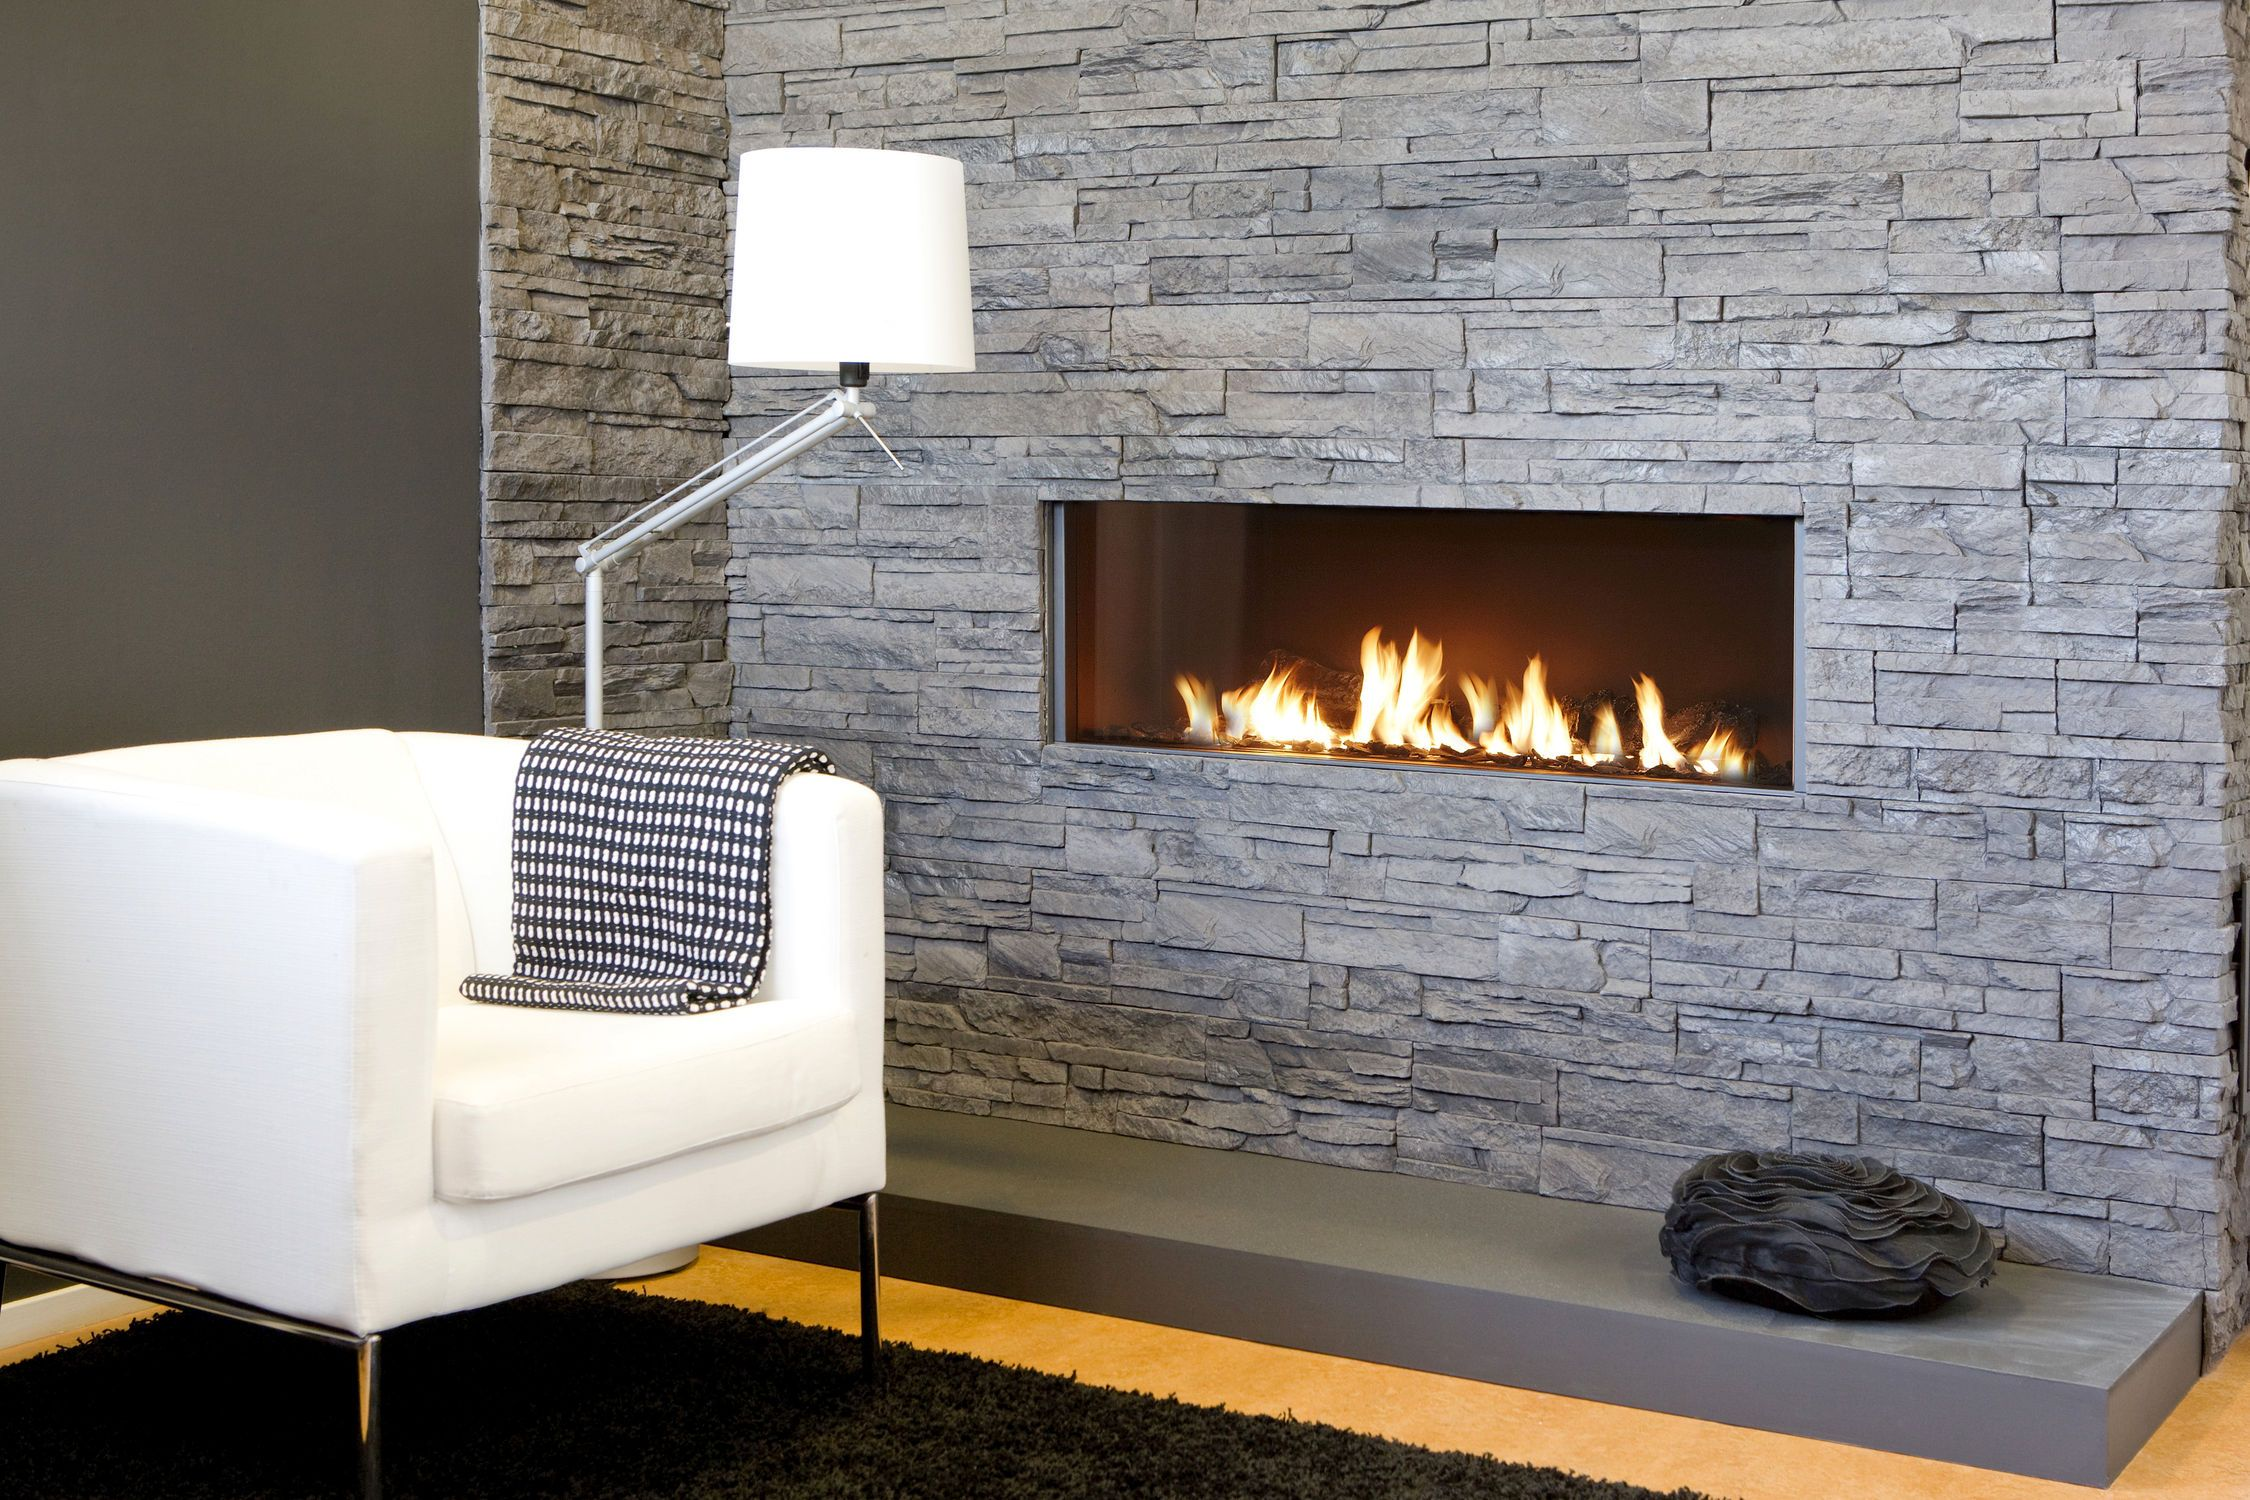 Inserts fireplace accessories new york by bowden s fireside - Inserts Fireplace Accessories New York By Bowden S Fireside Contemporary Gas Fireplace Designs Built In Download